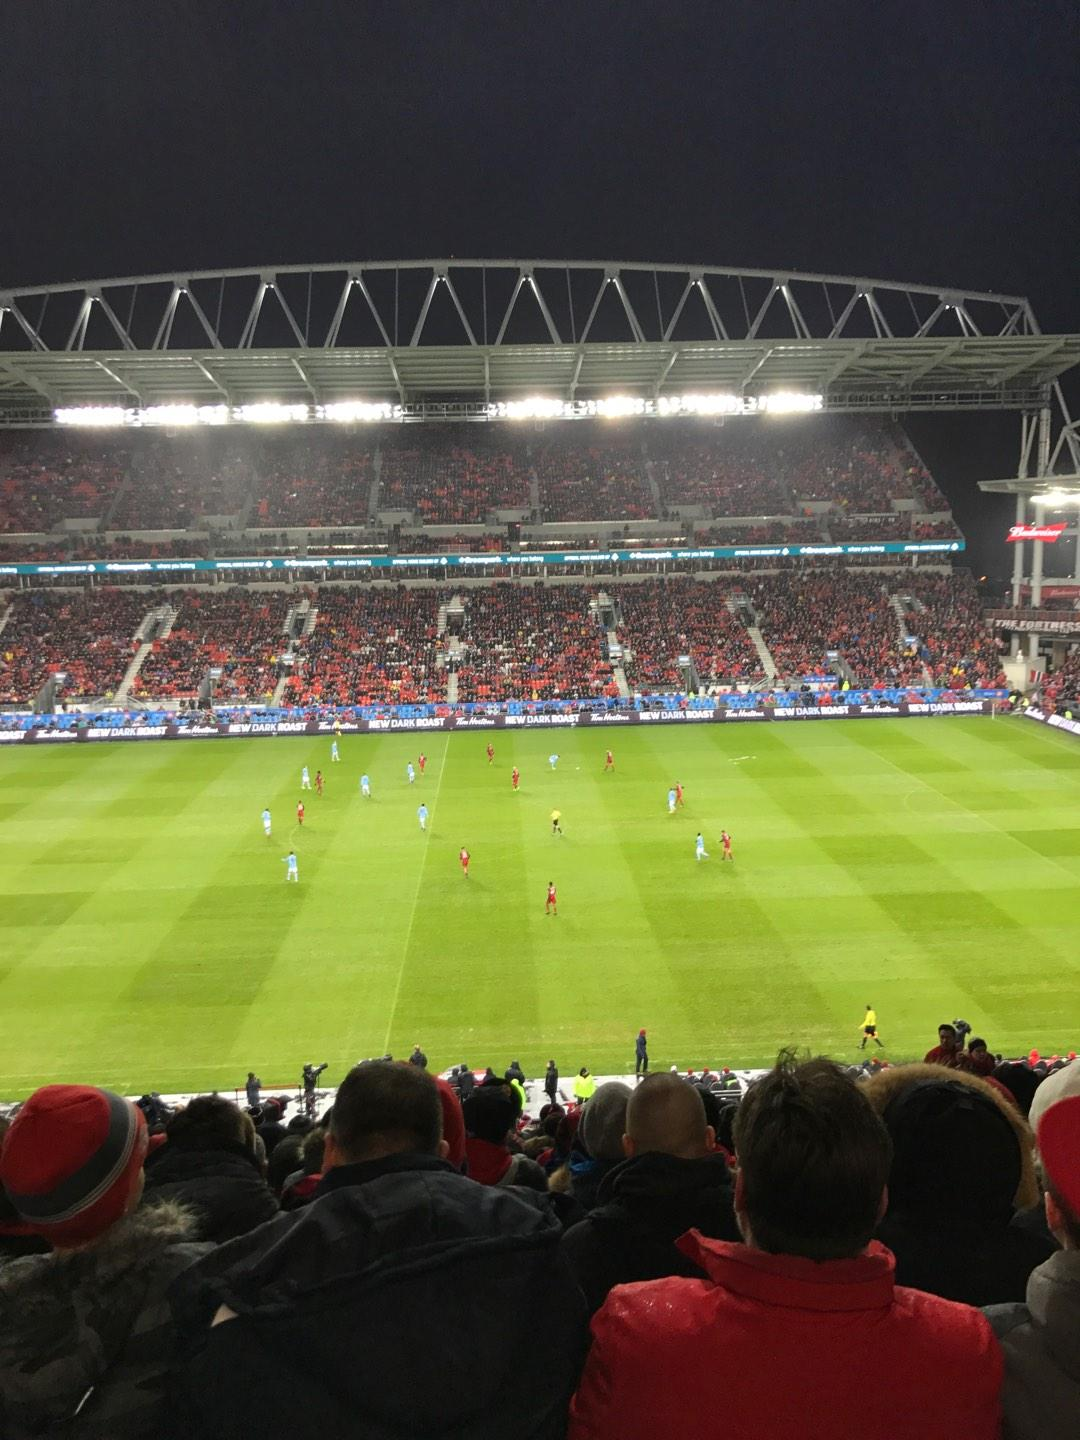 BMO Field Section 223 Row 21 Seat 10